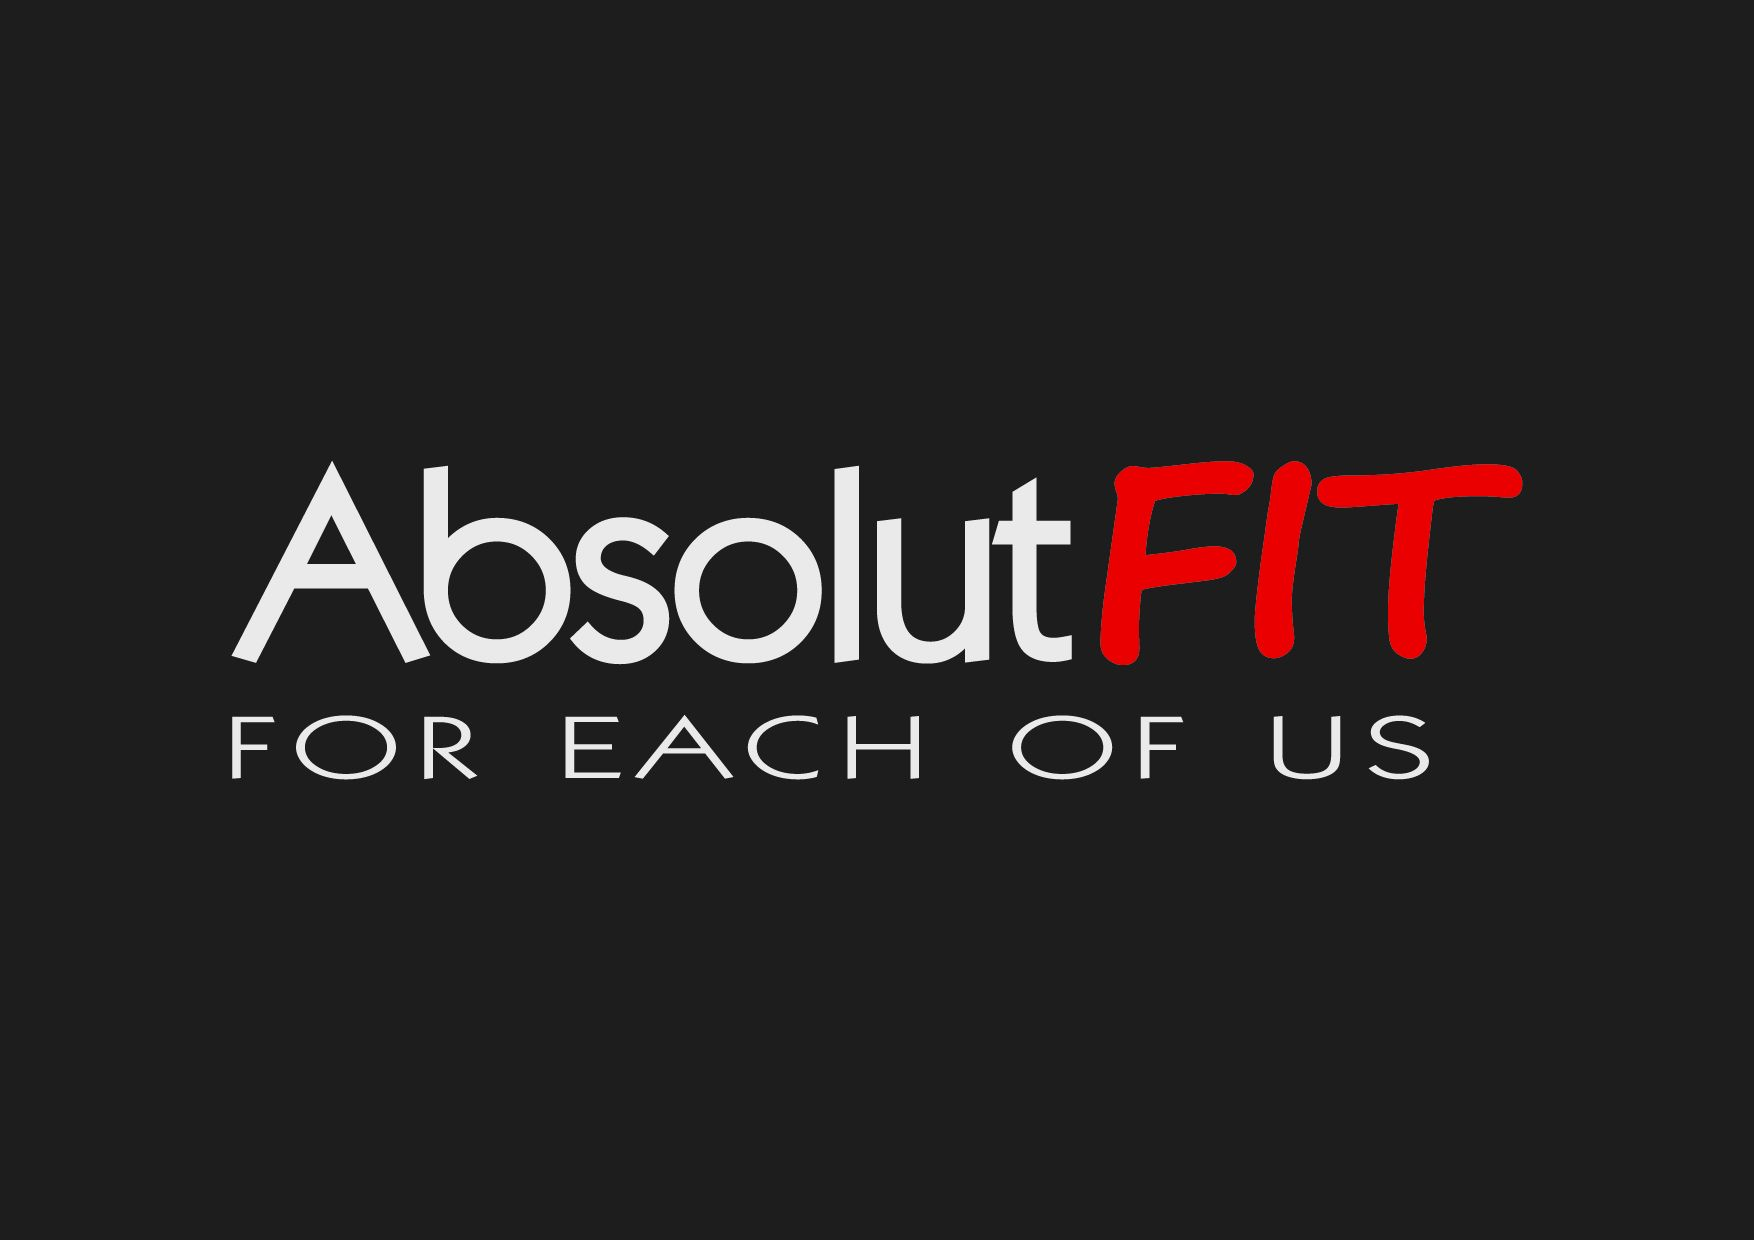 AbsolutFit